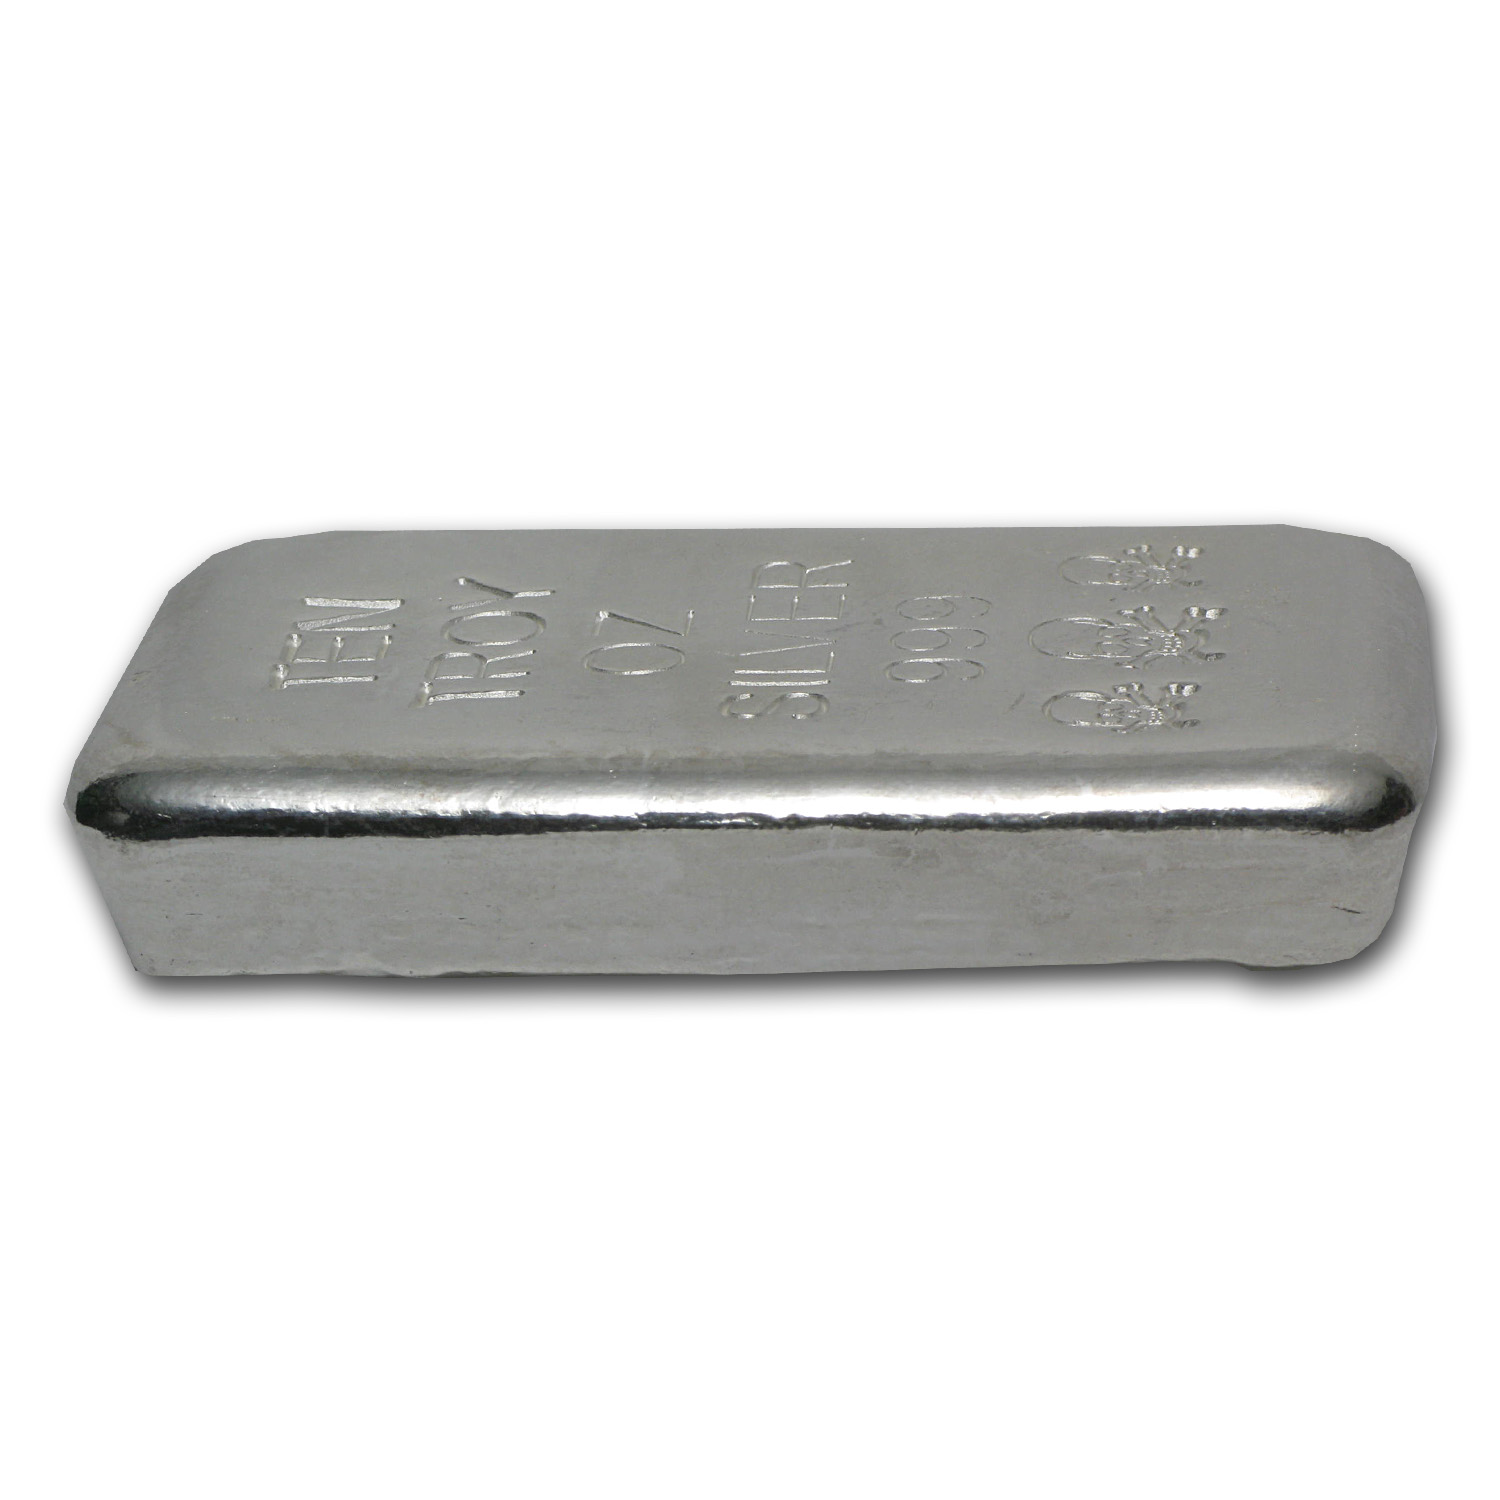 10 oz Silver Bars - Skull & Bones (Atlantis Mint)